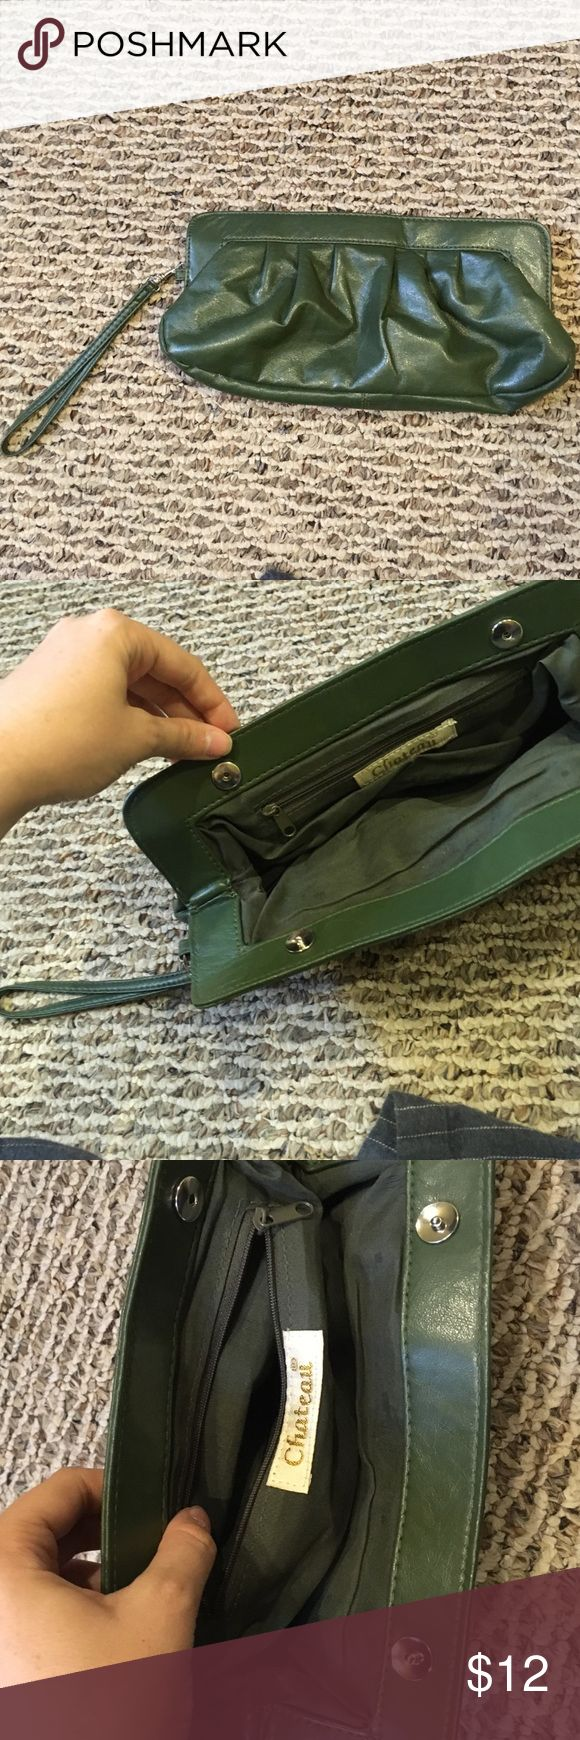 Cute Olive Green Clutch Bag The cutest clutch for your next outing! Whether it be for a date or a girls night out on the town ! chateau Bags Clutches & Wristlets